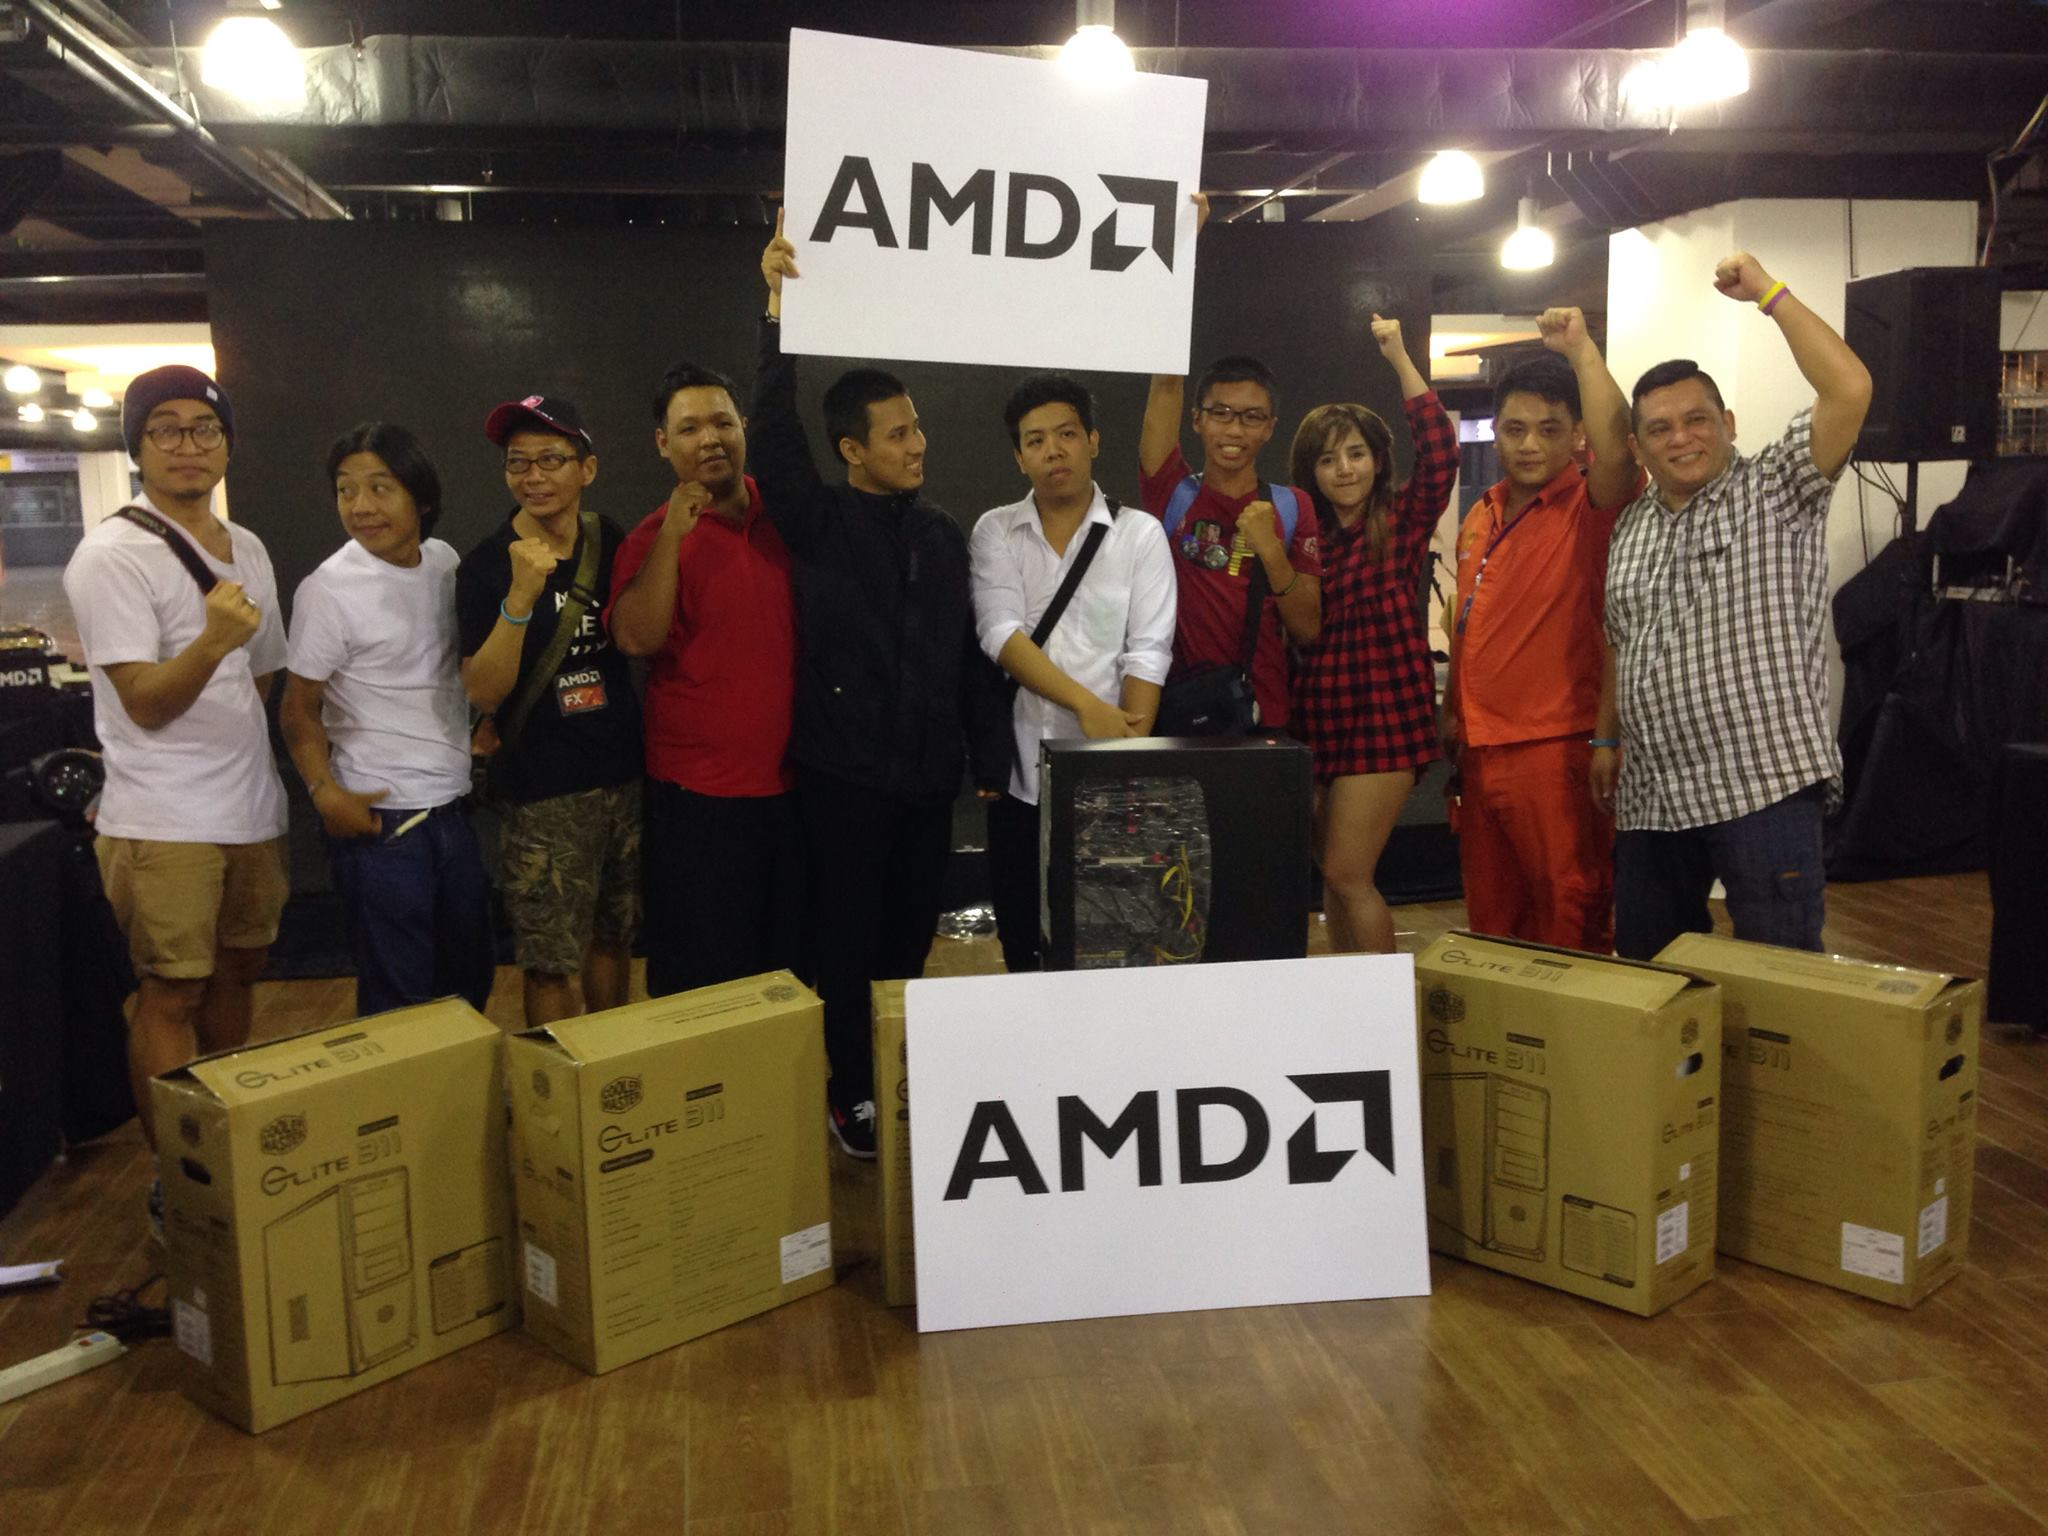 12309616 10153558897112819 3441949344855346437 o AMD OMG! Party 2015 (AMD Overclock Modding Gaming Party 2015)